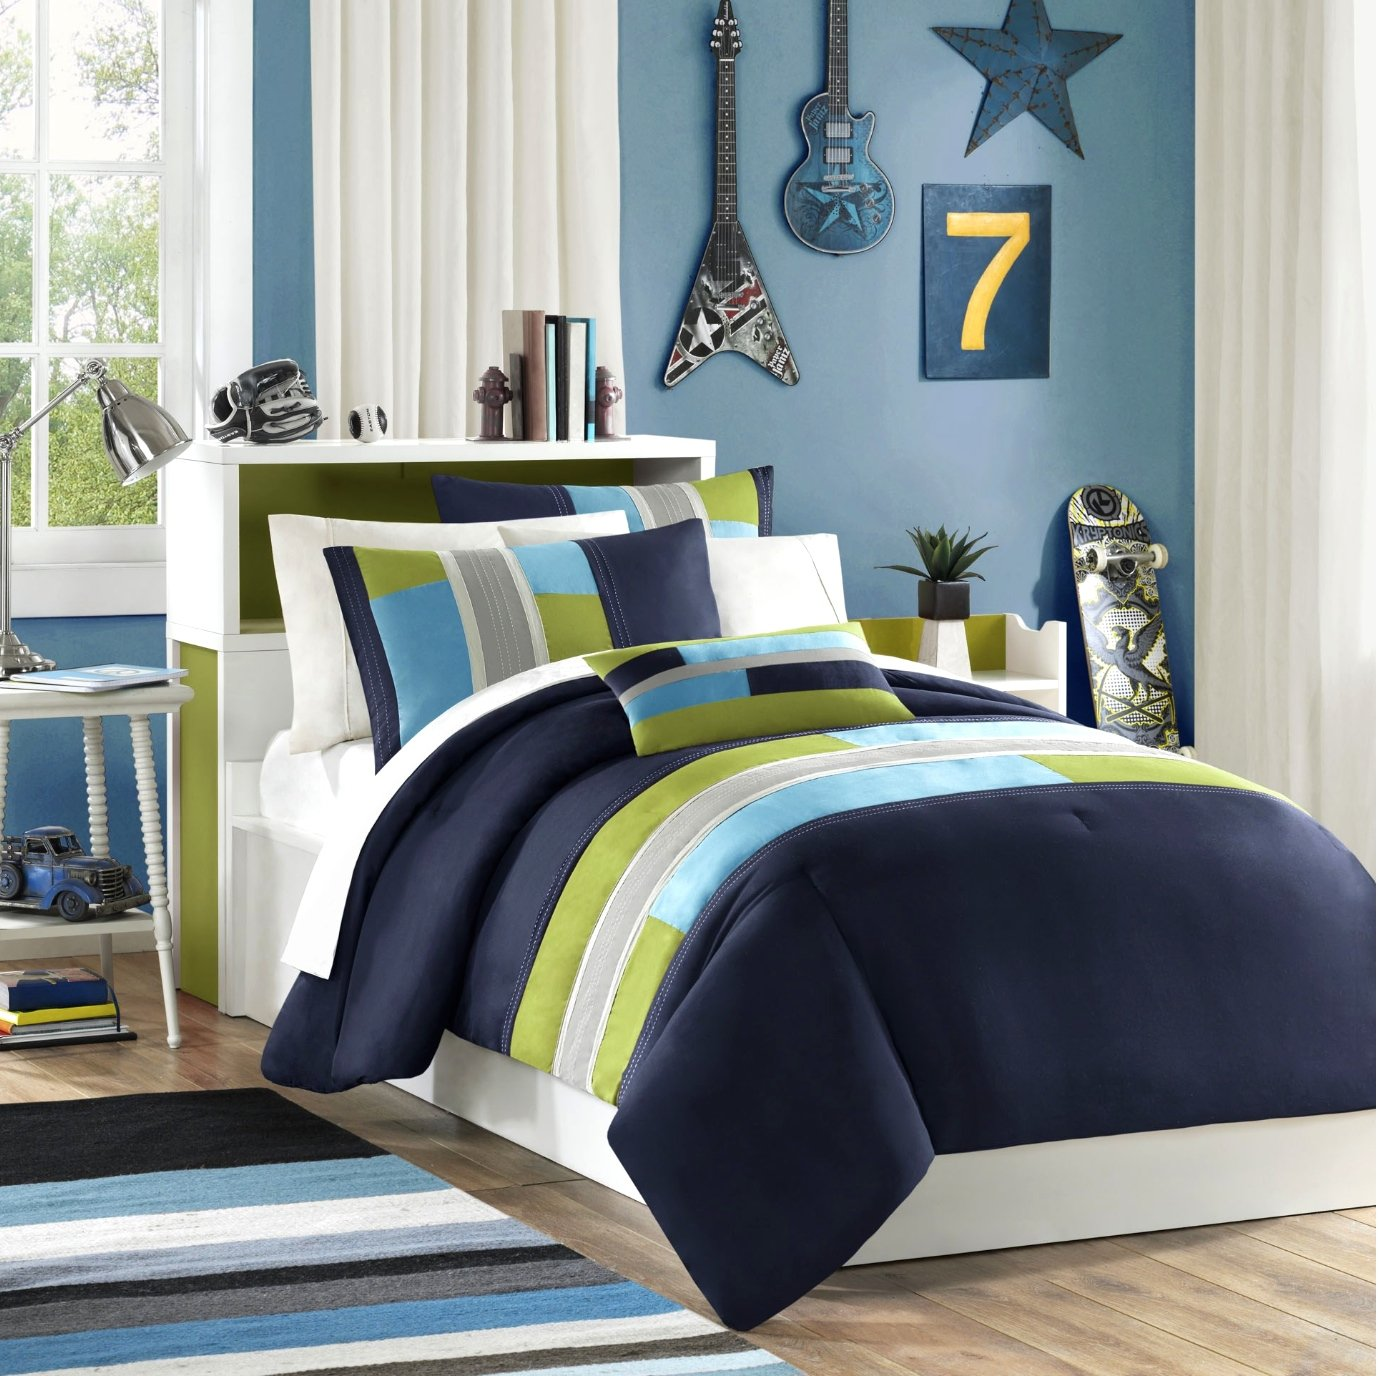 Kids Boys And Teen Bedding Sets Ease Bedding With Style - Blue and yellow comforter sets king